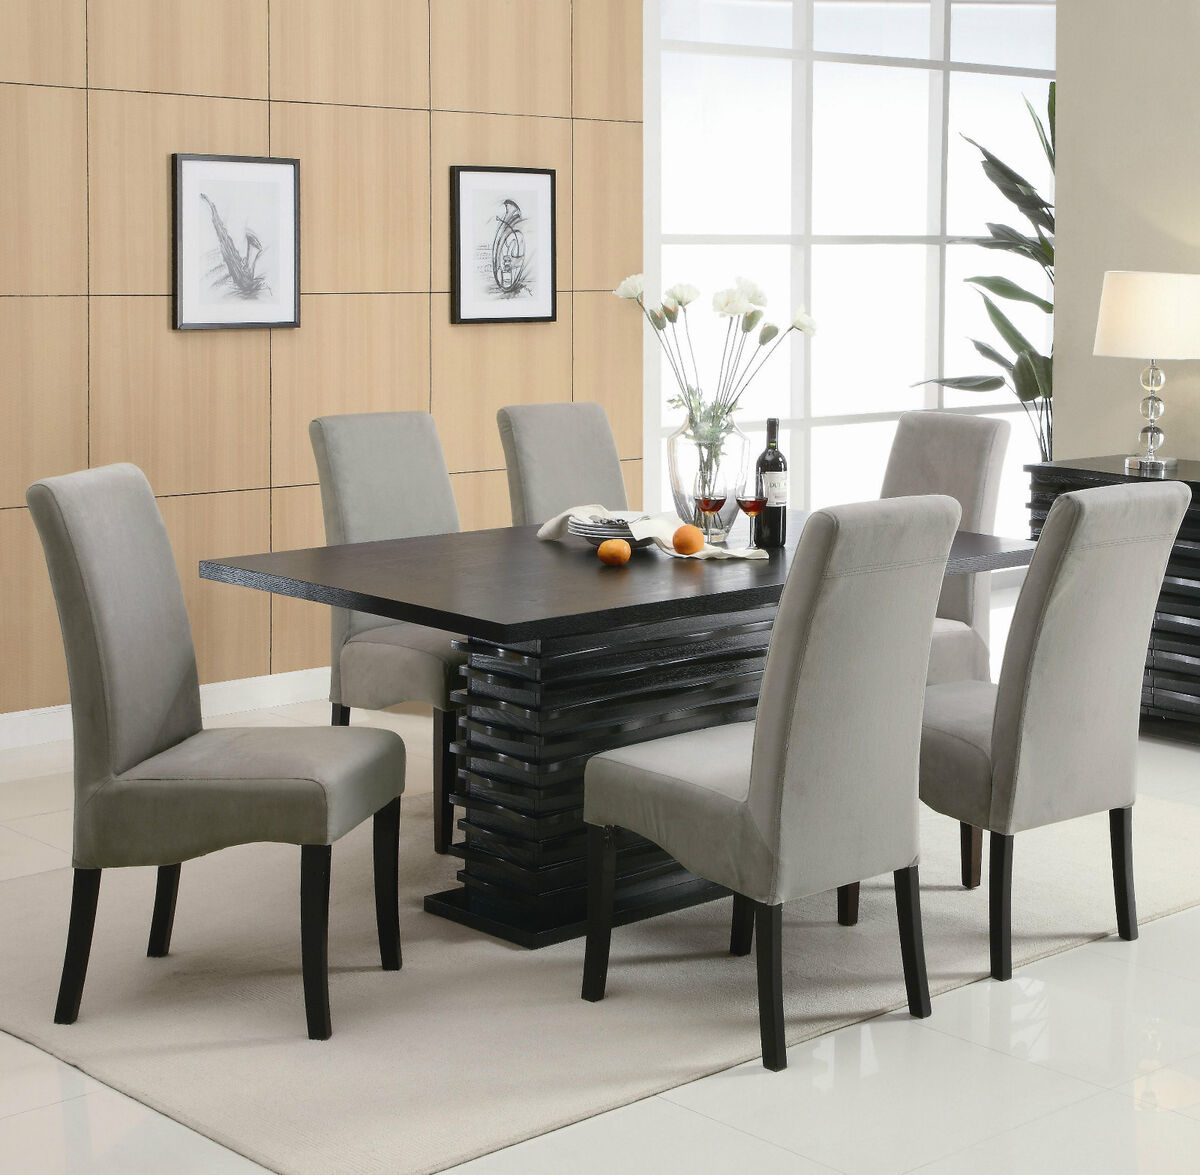 Dining Room Furniture Sale: CONTEMPORARY BLACK DINING TABLE CHAIRS DINING ROOM